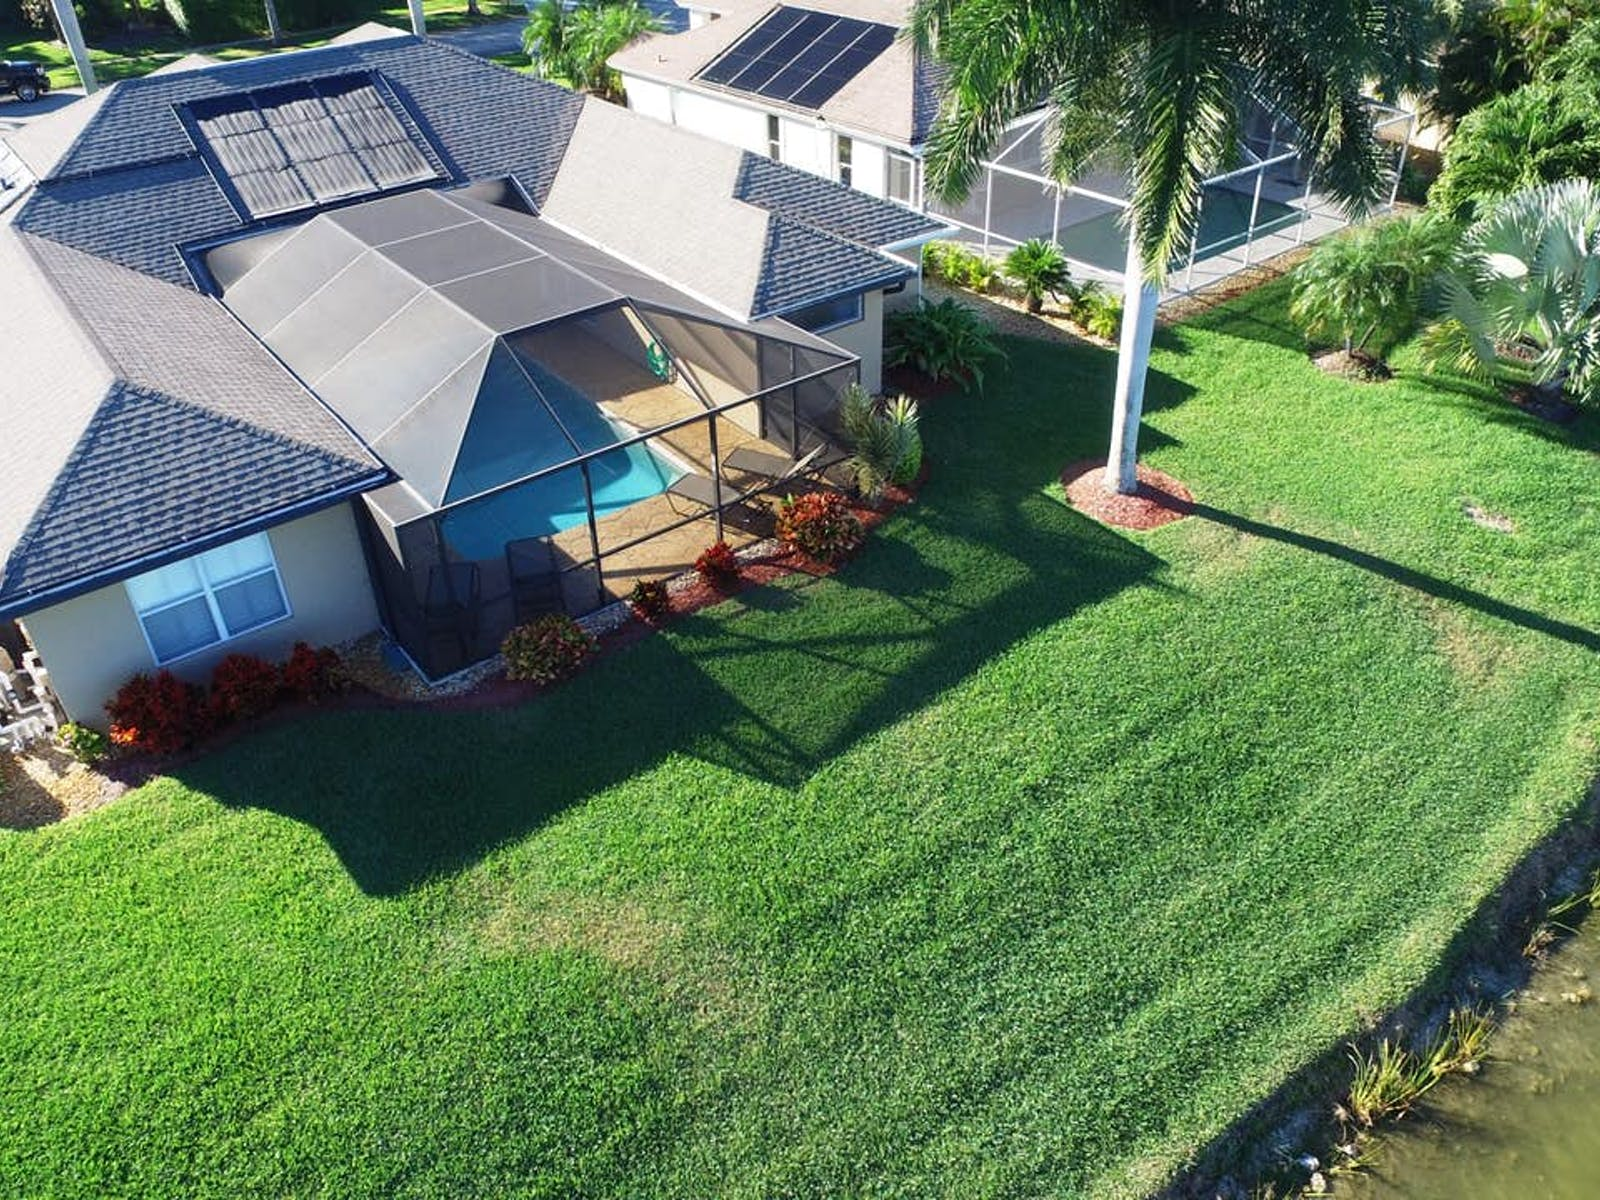 Aerial view of vacation home and lawn in Naples, FL